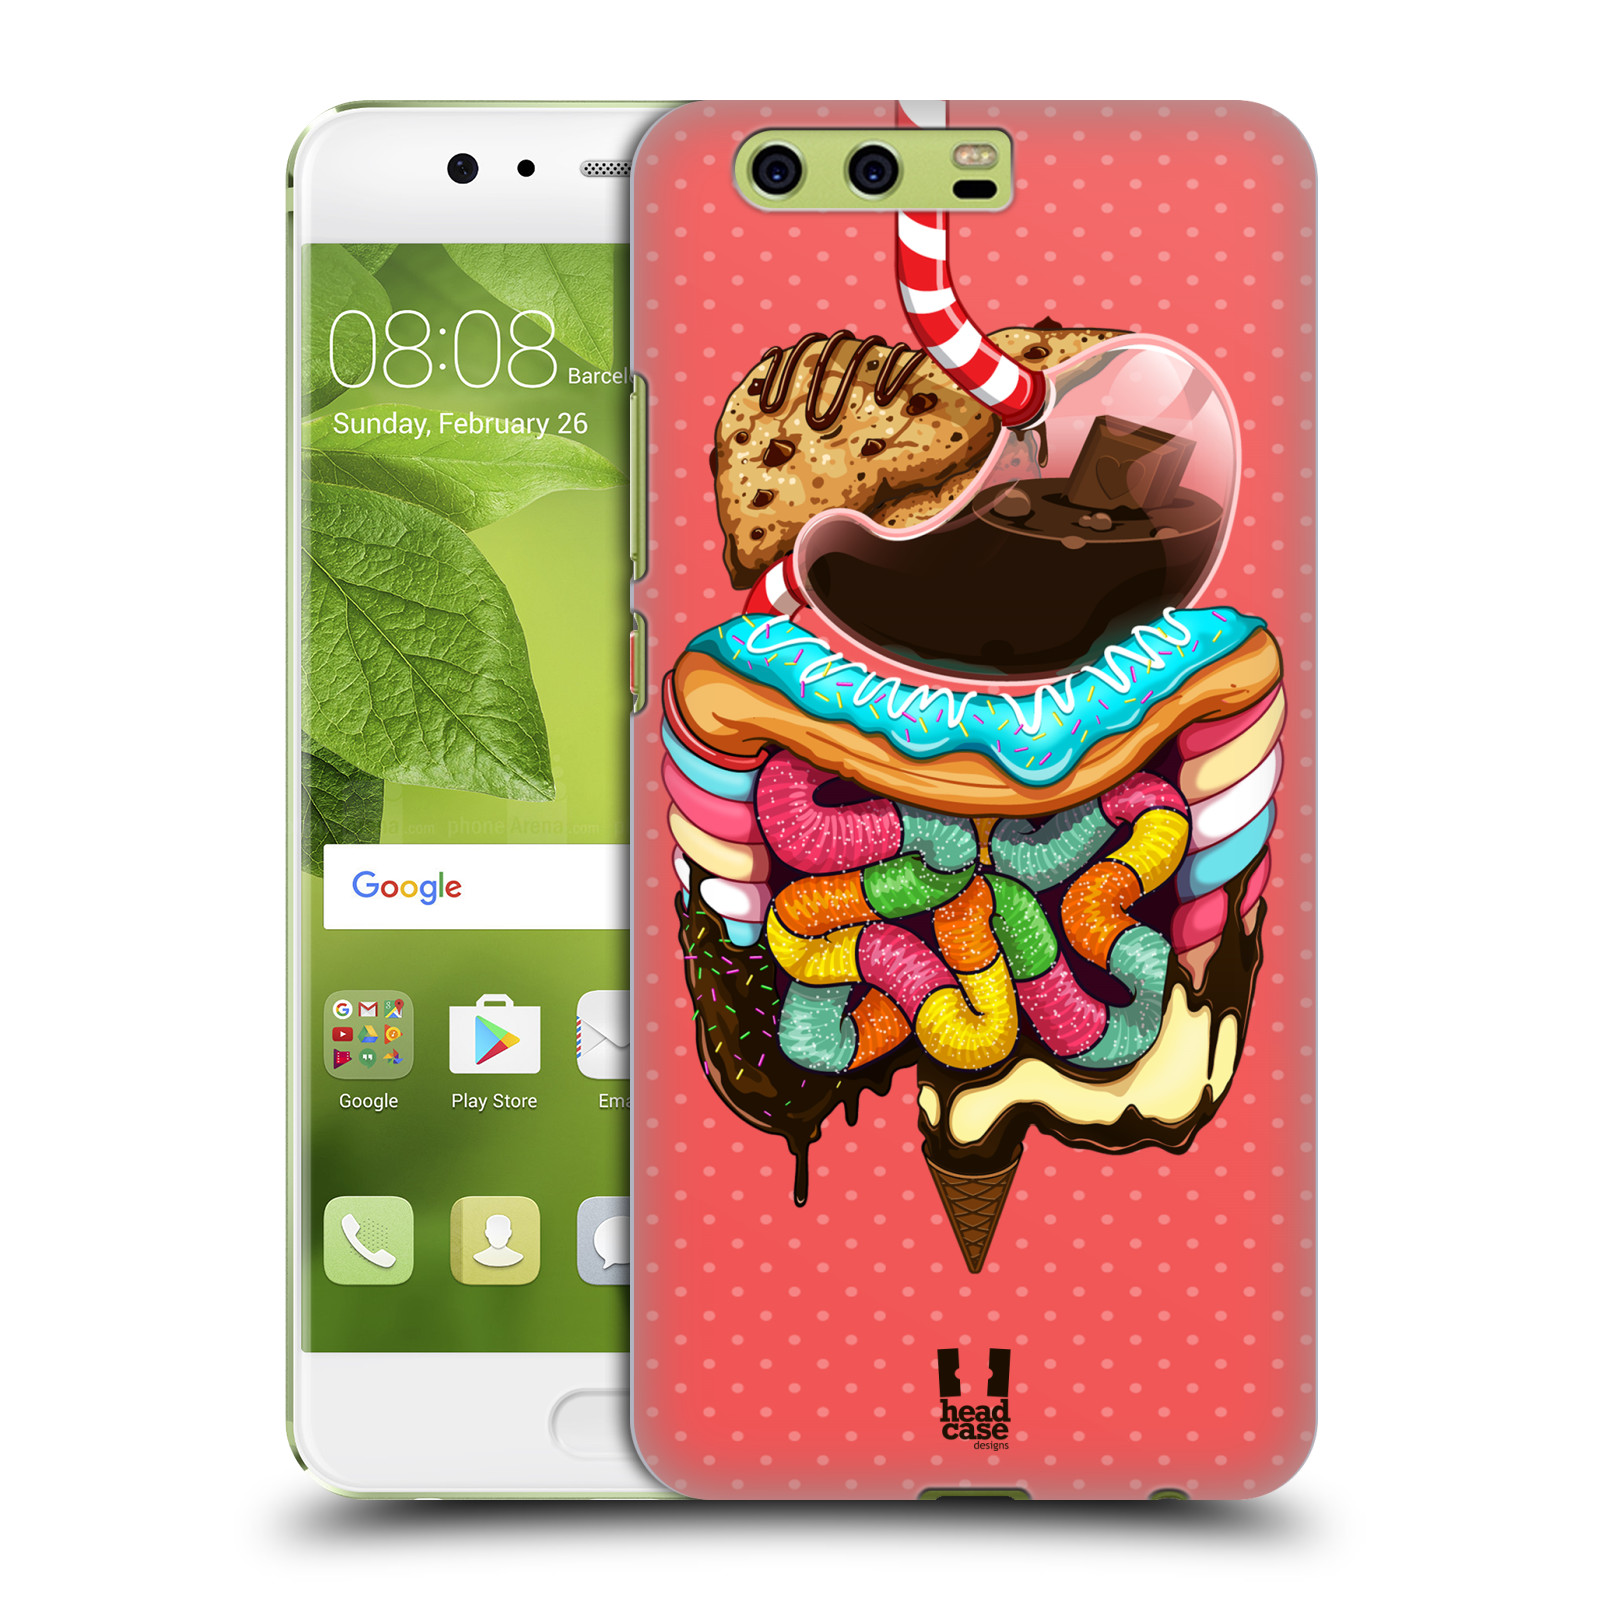 HEAD CASE DESIGNS HUMAN ANATOMY HARD BACK CASE FOR HUAWEI PHONES 1 ...